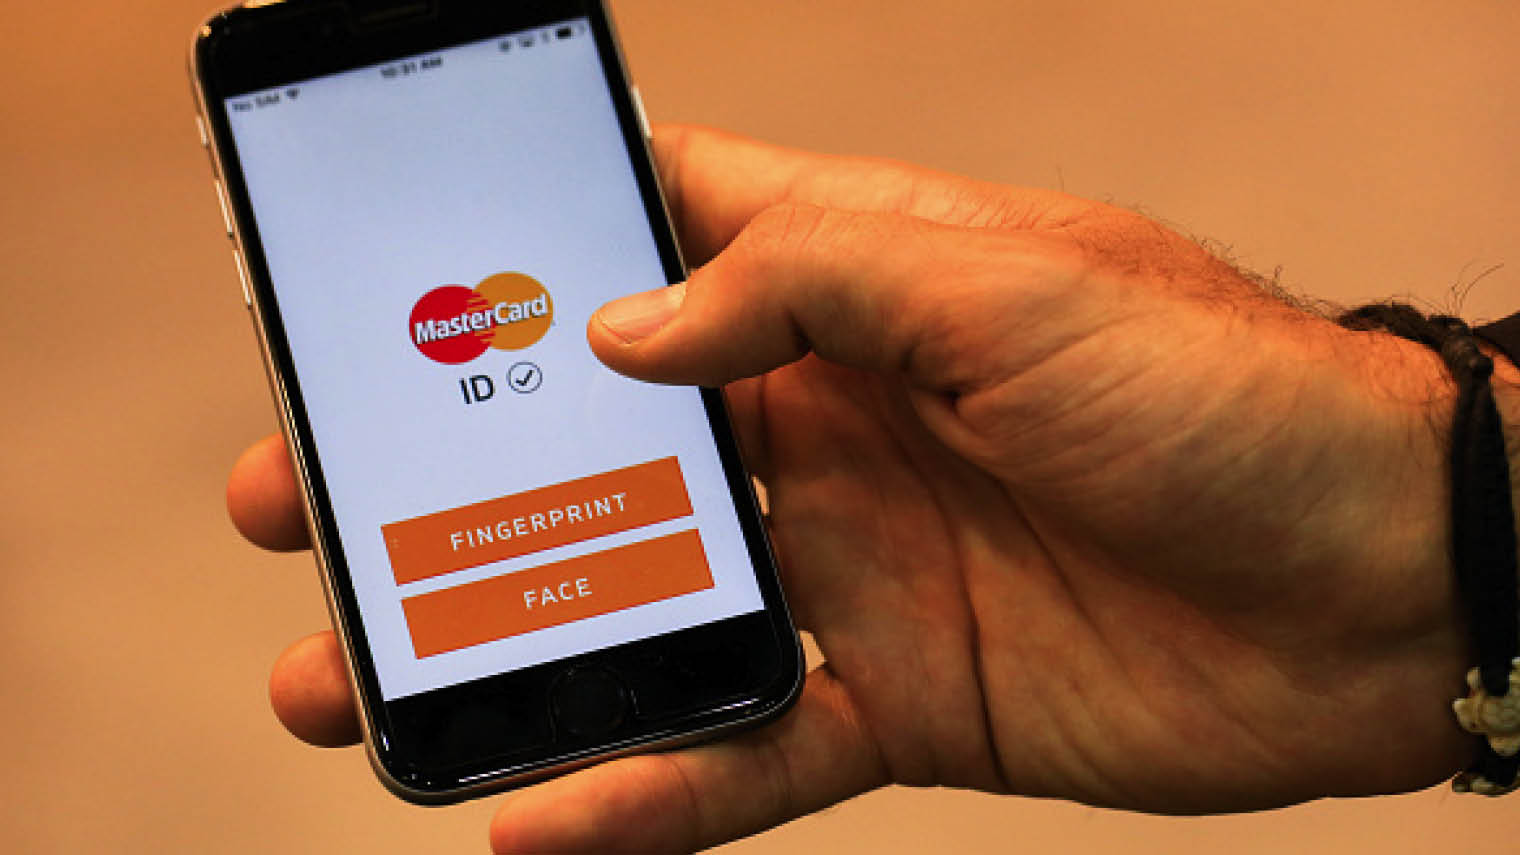 """MasterCard's Identity Check biometric technology includes the so-called """"selfie pay"""" feature"""